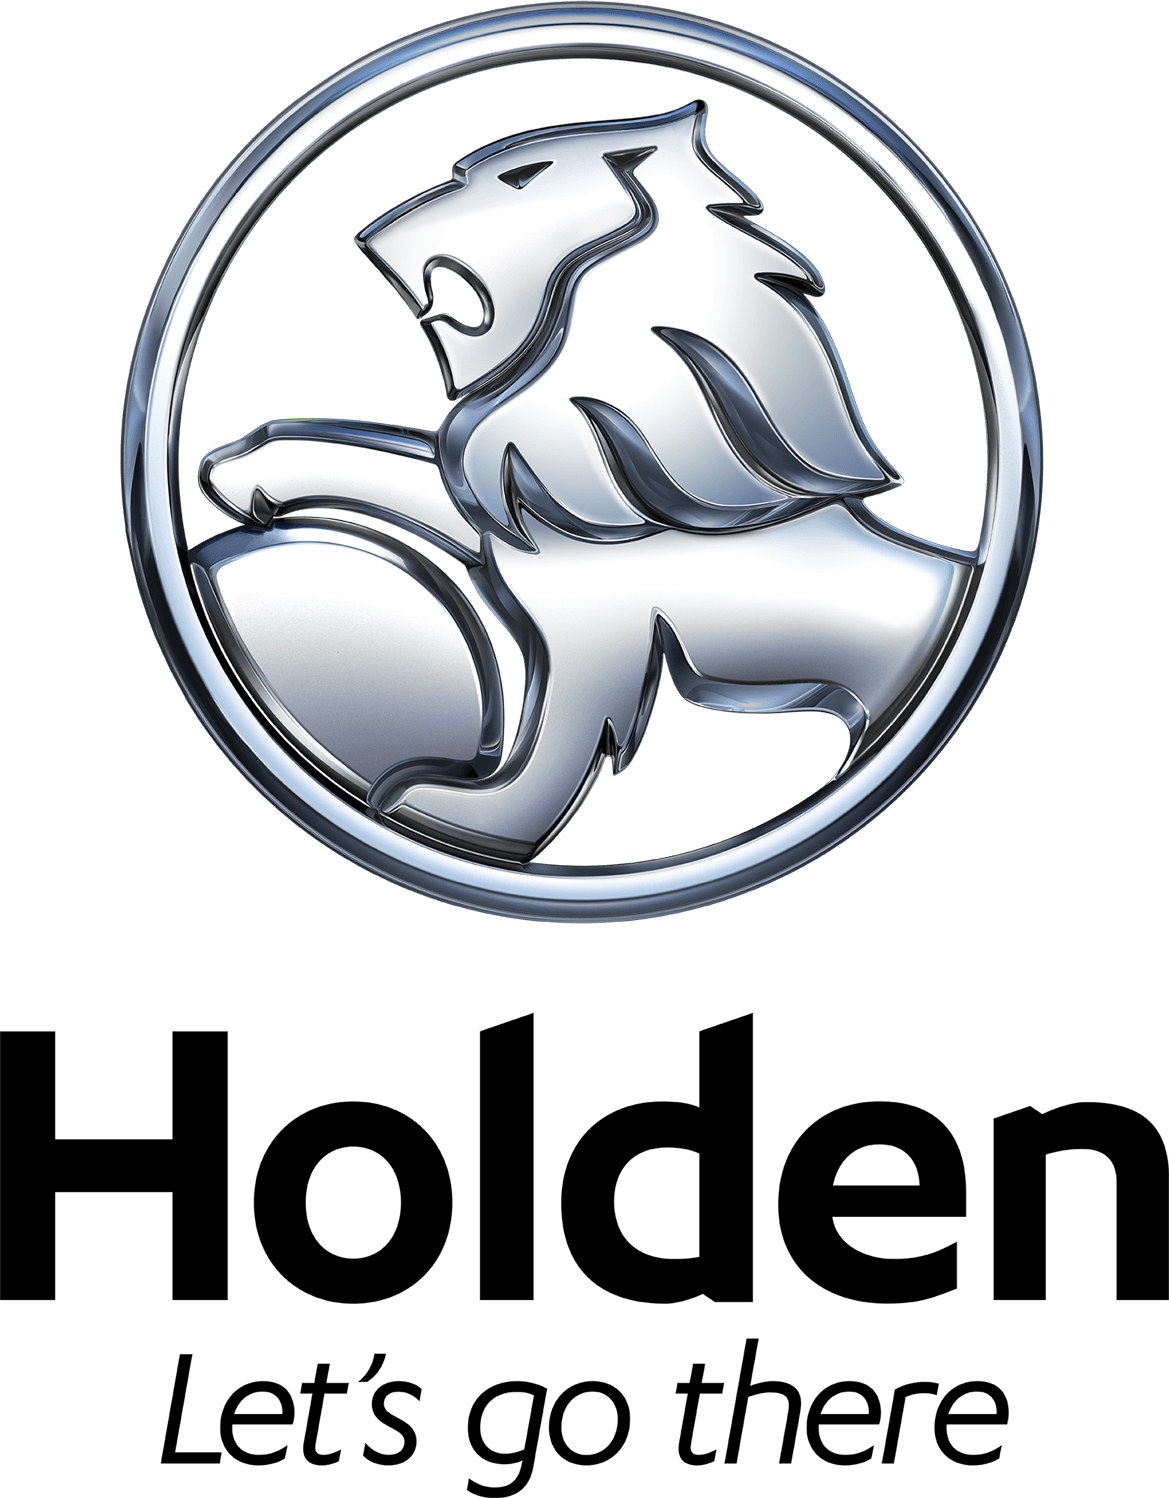 Holden Logo - Holden | Logopedia | FANDOM powered by Wikia